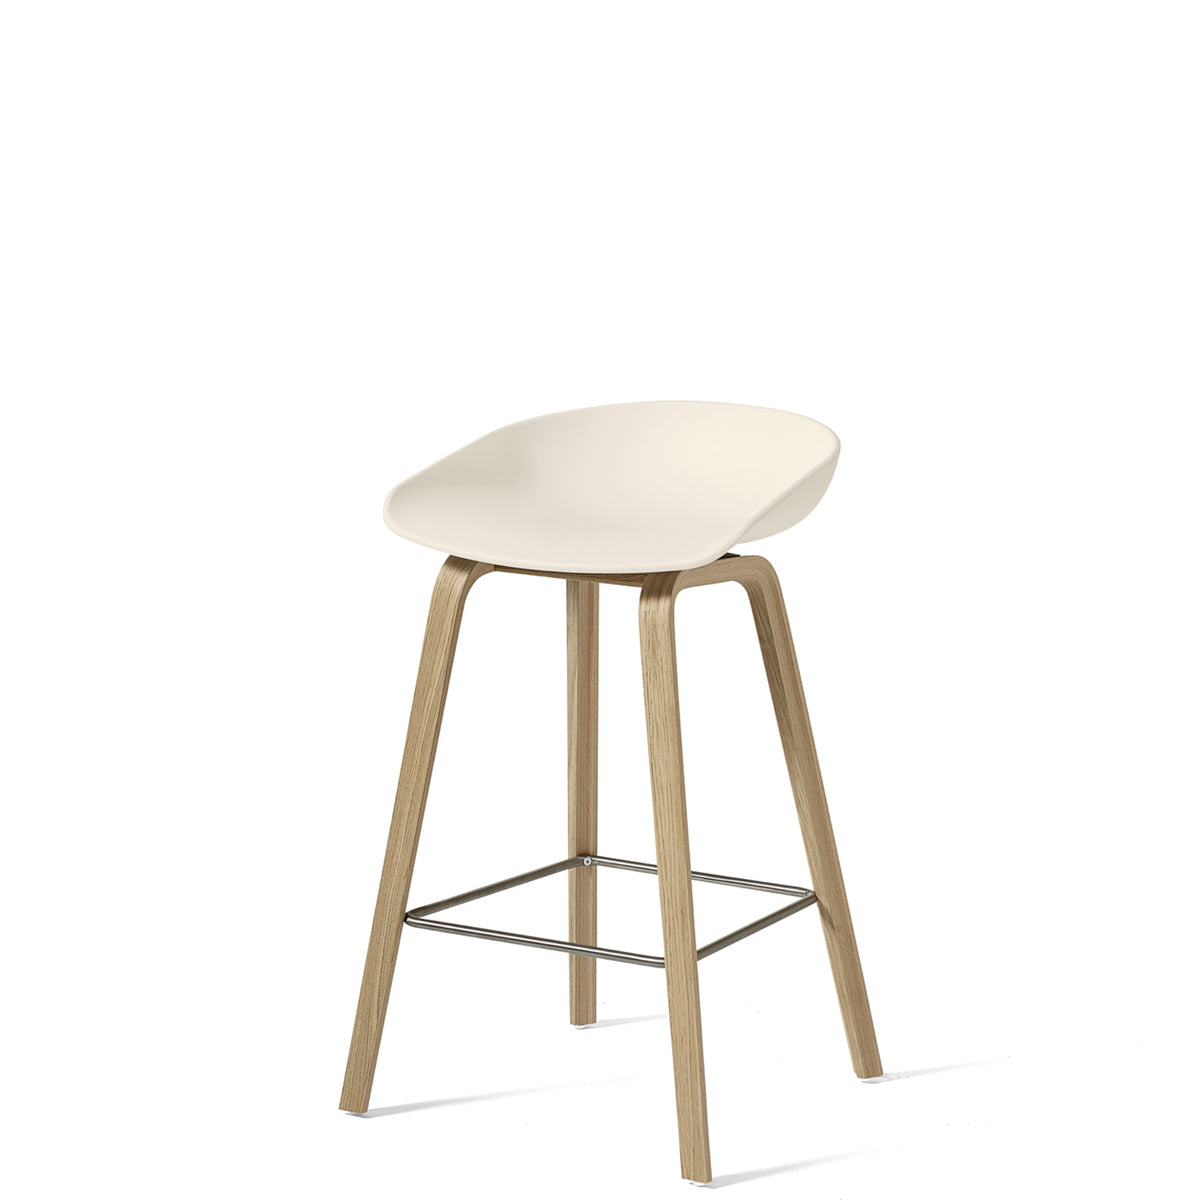 HAY About A Stool AAS32 750mm Cream White with Matt Lacquered Oak Base